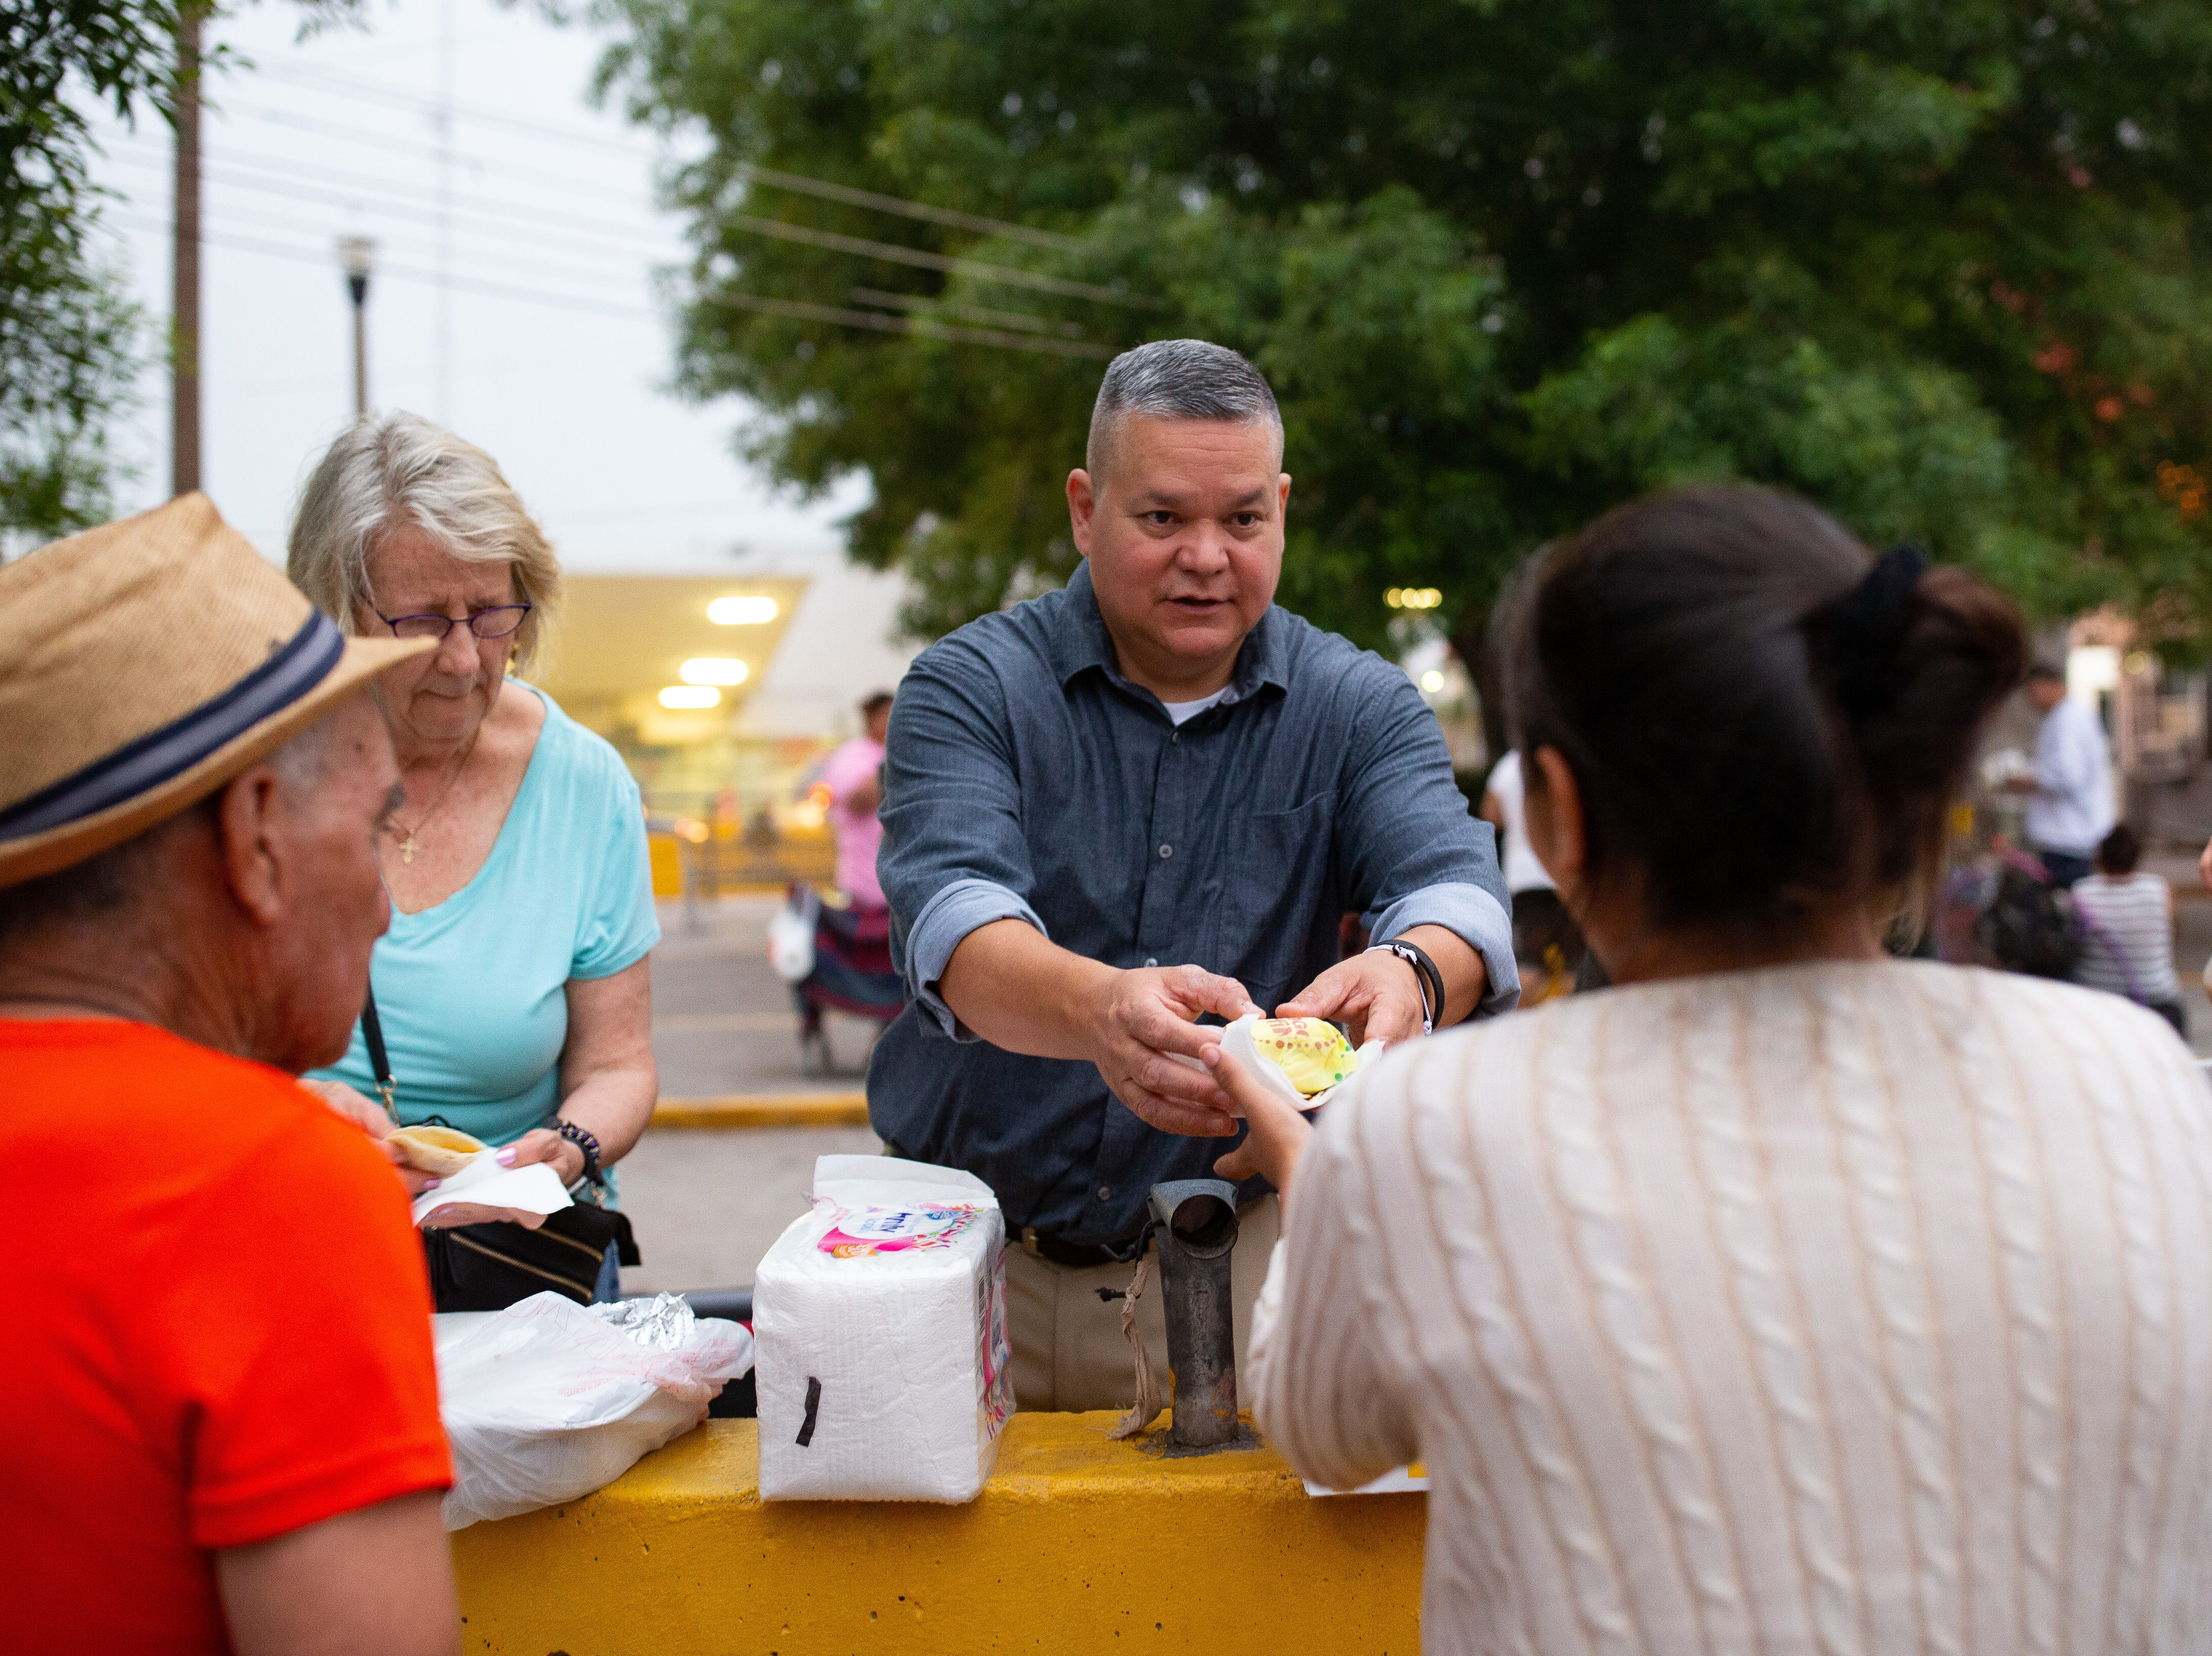 Mike Benavides, of Team Brownsville and Ann Finch of Austin feed migrants breakfast on the Matamoros Mexico side of the Gateway International Bridge on Friday, April 5, 2019. Mike Benavides and other volunteers bring two meals a day from the Brownsville Texas to Matamoros Mexico to help the migrants waiting to seek asylum in the US.